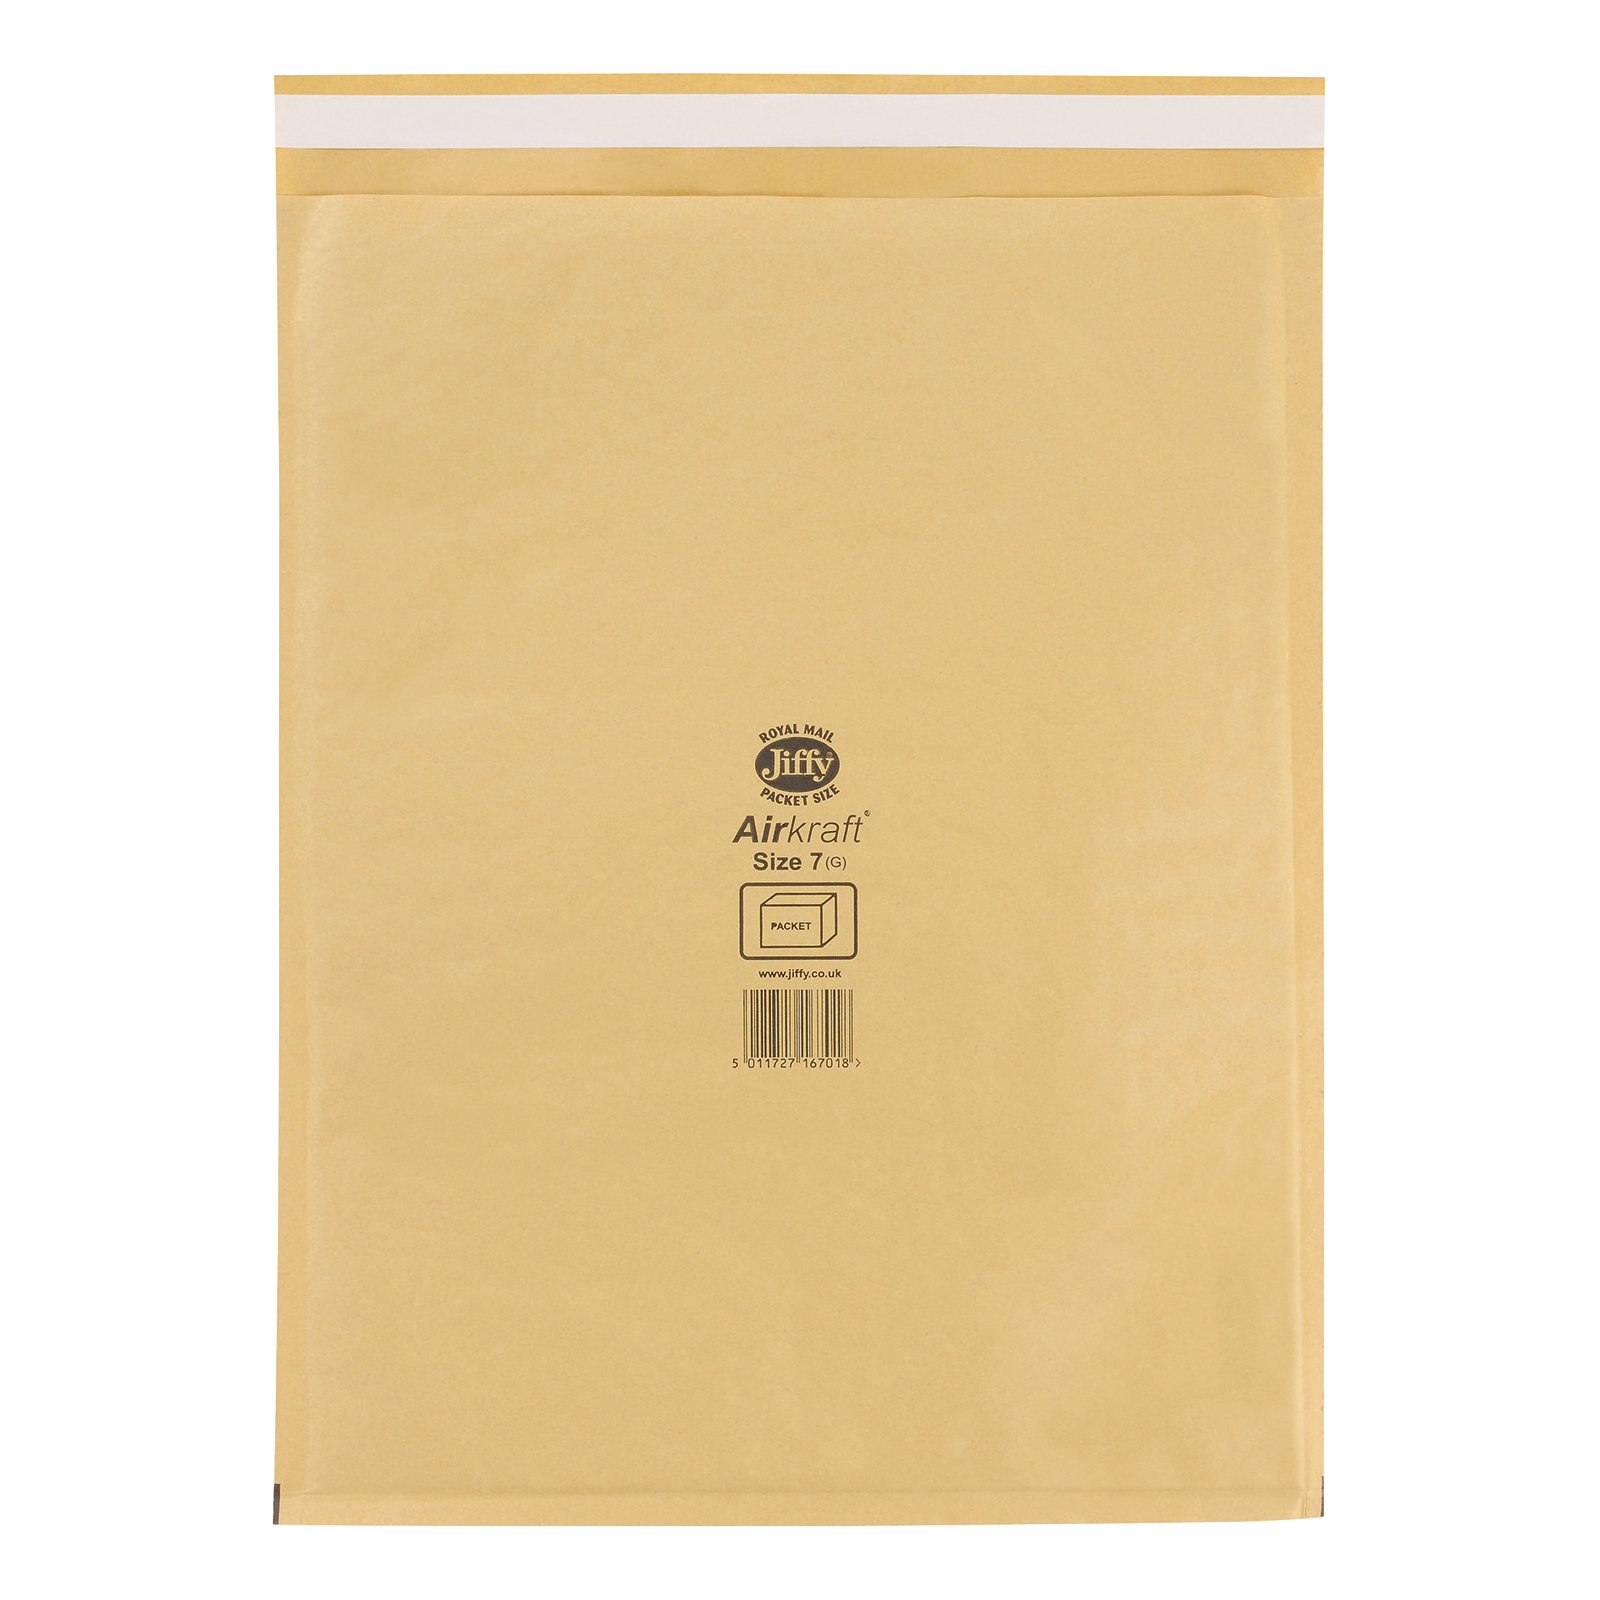 Jiffy Airkraft Bubble Bag Envelopes Size 7 Gold 340x445mm Ref JL-GO-7 [Pack 50]